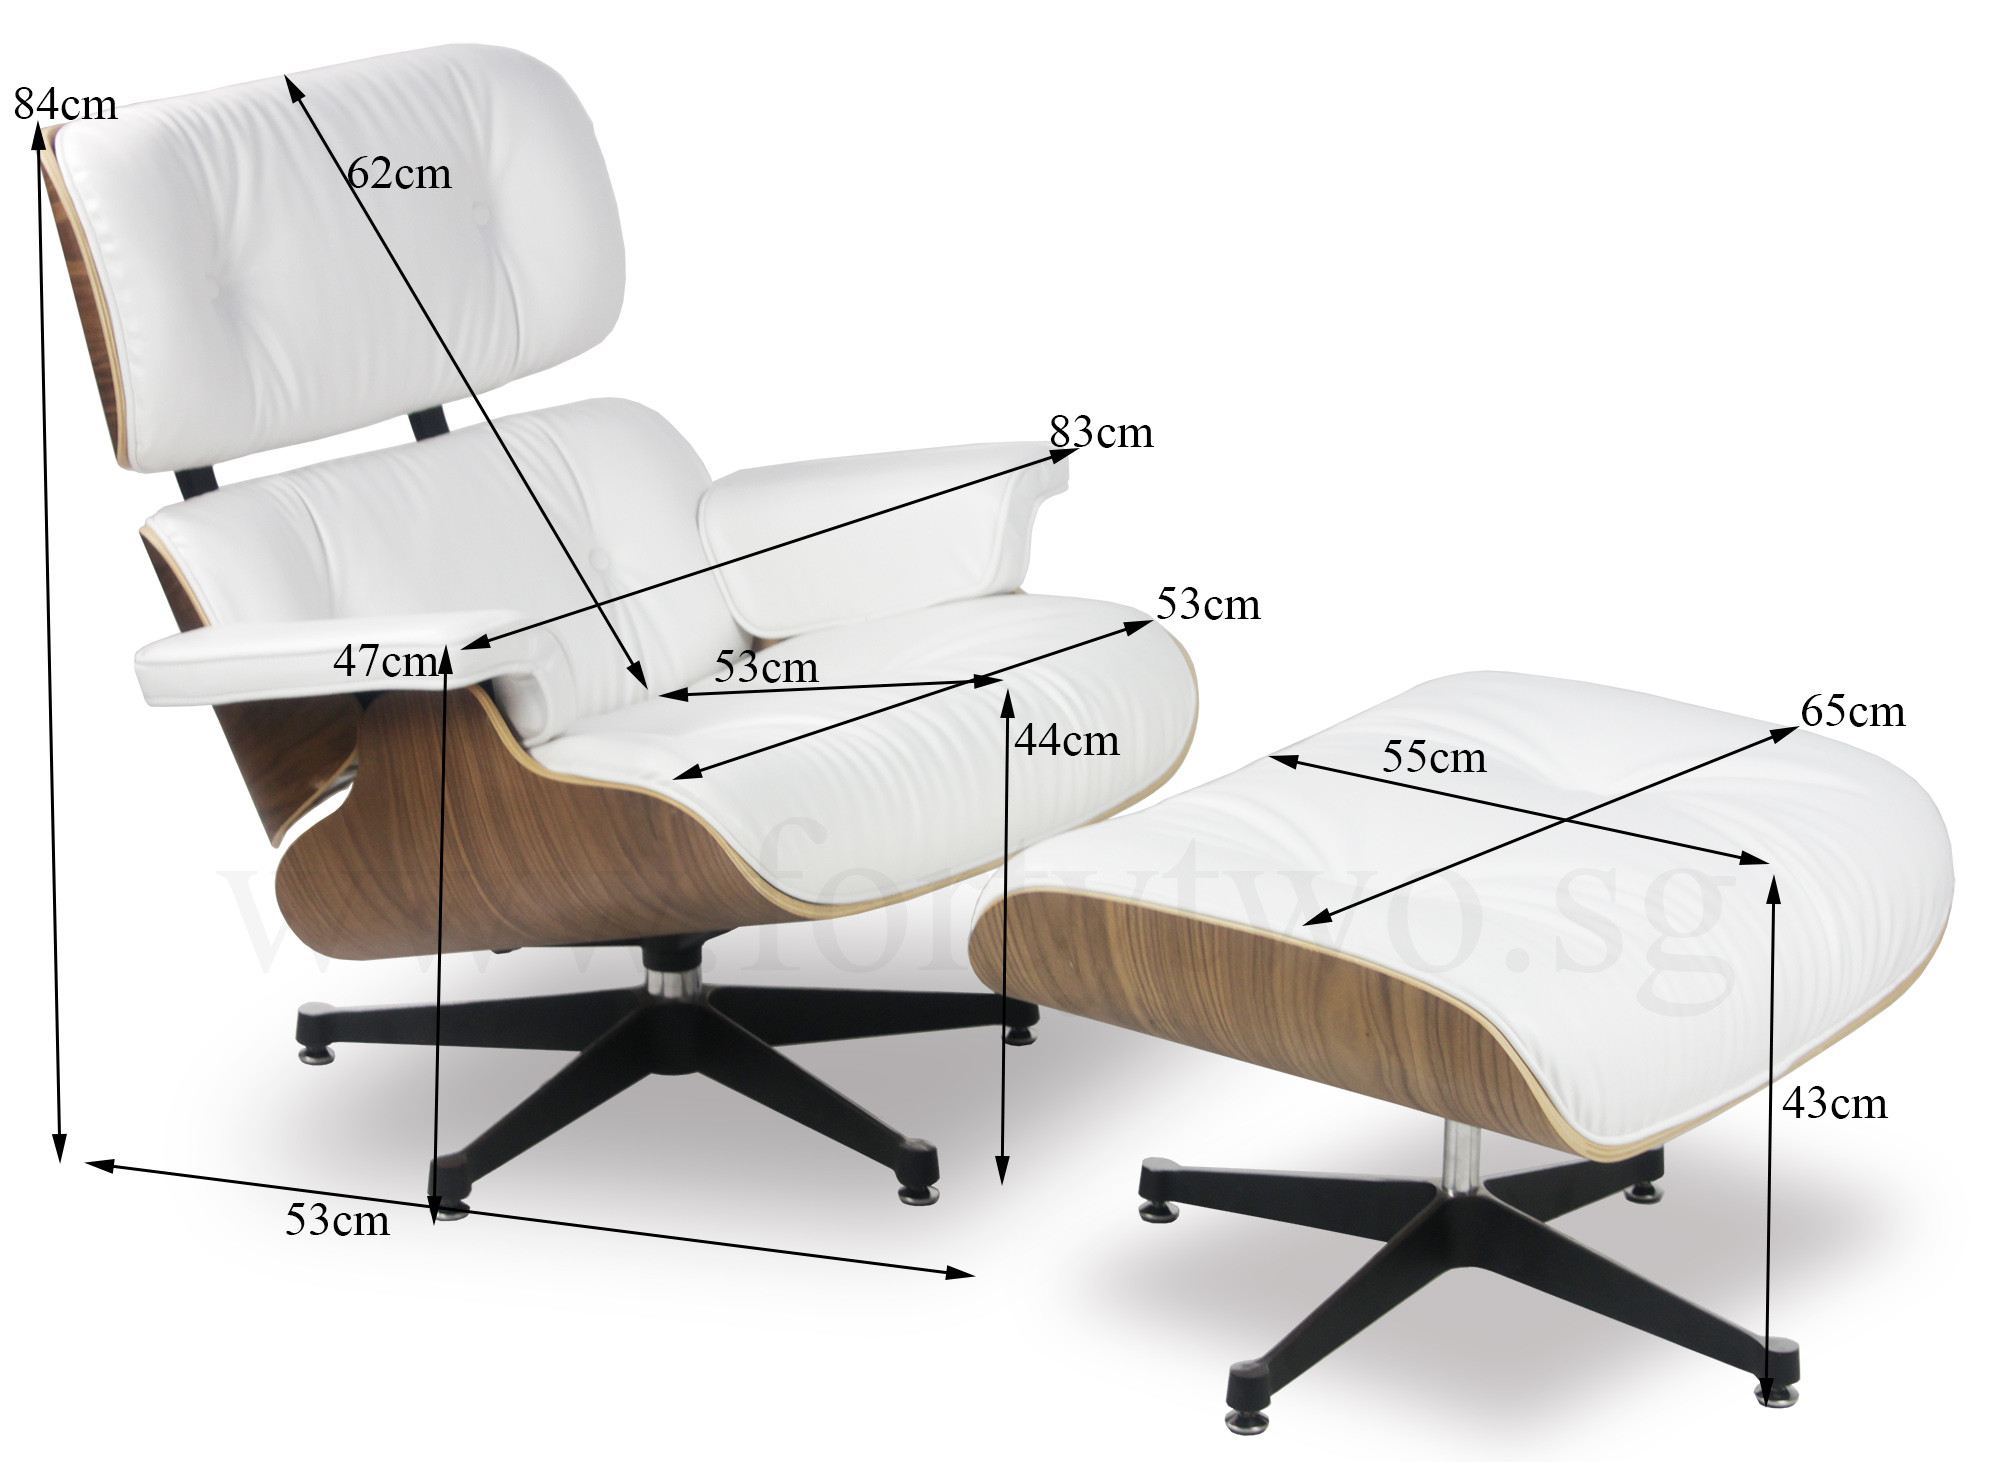 Eames Lounge Stoel Replica.Eames Replica Lounge Chair White Leather